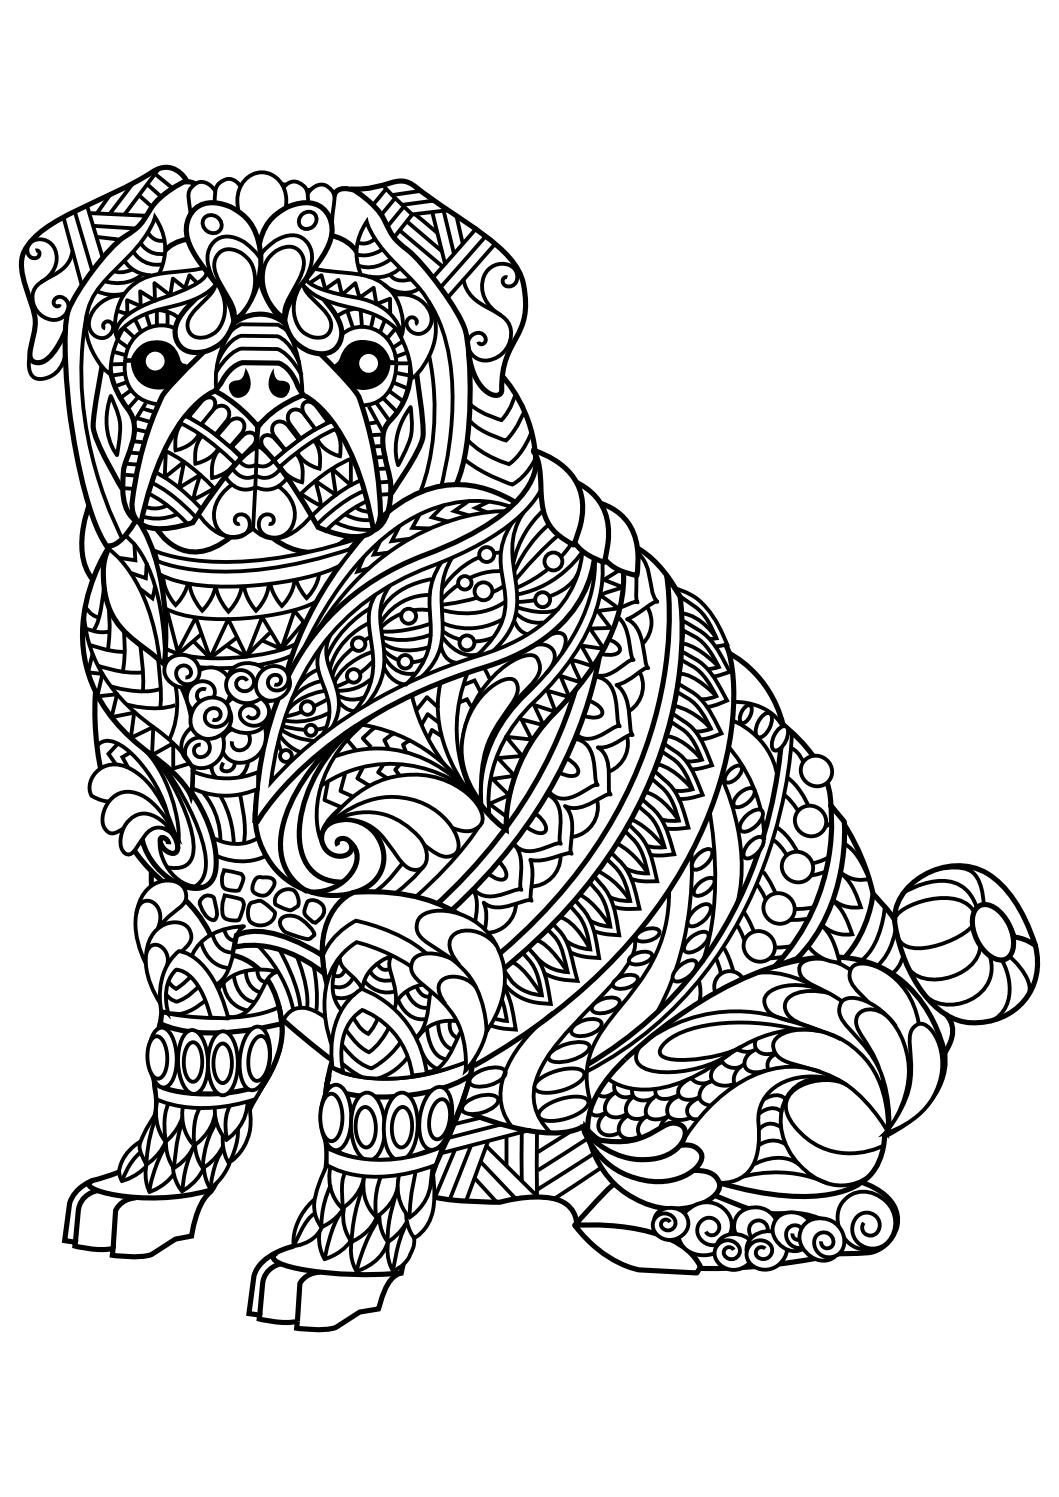 Animal coloring pages pdf | Coloring - Animals | Pinterest ...